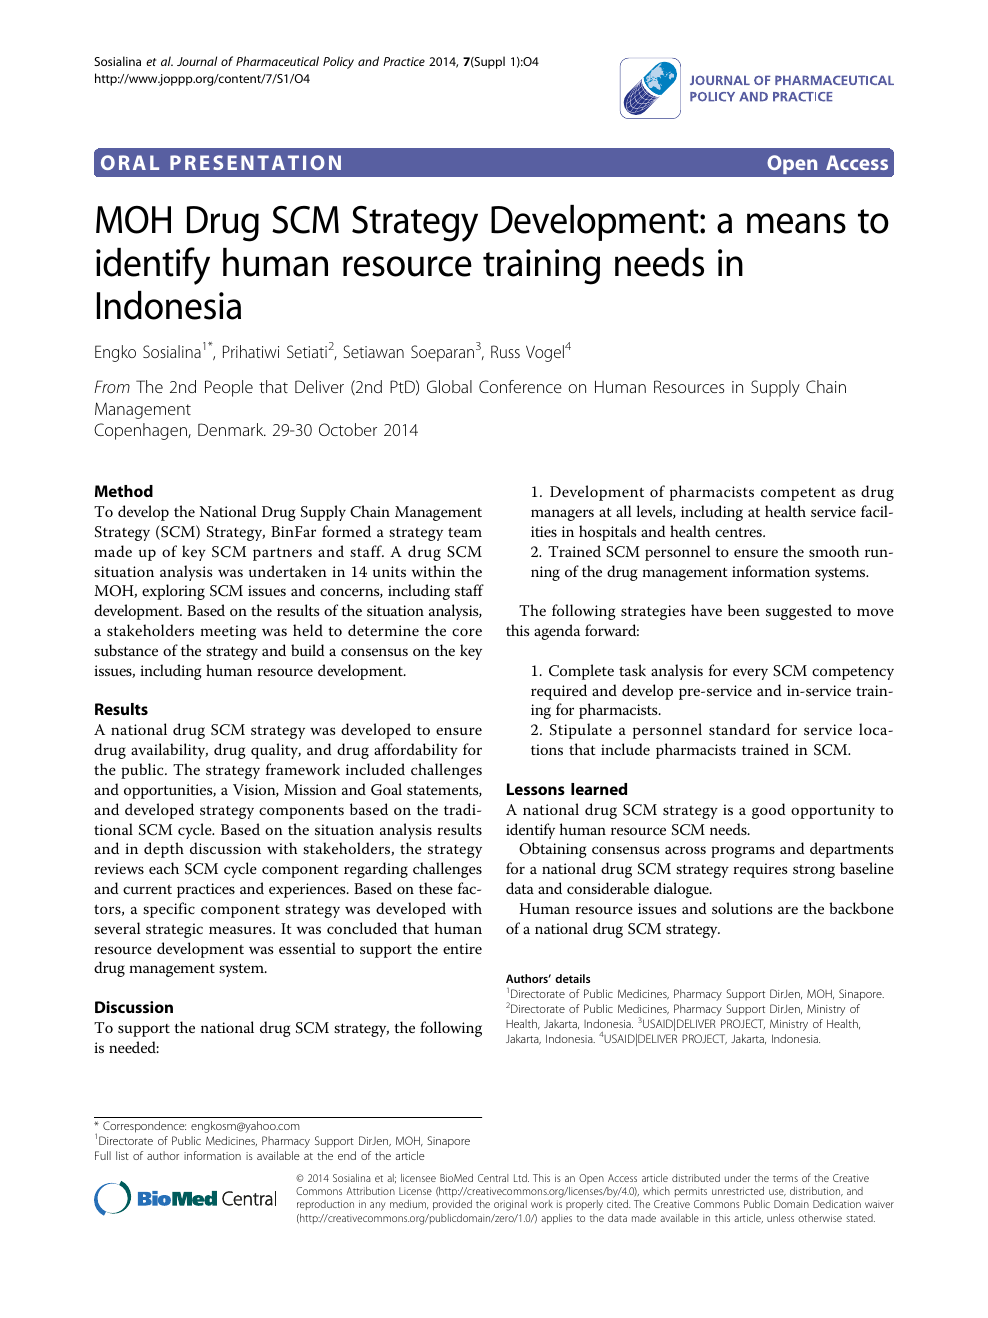 MOH Drug SCM Strategy Development: a means to identify human